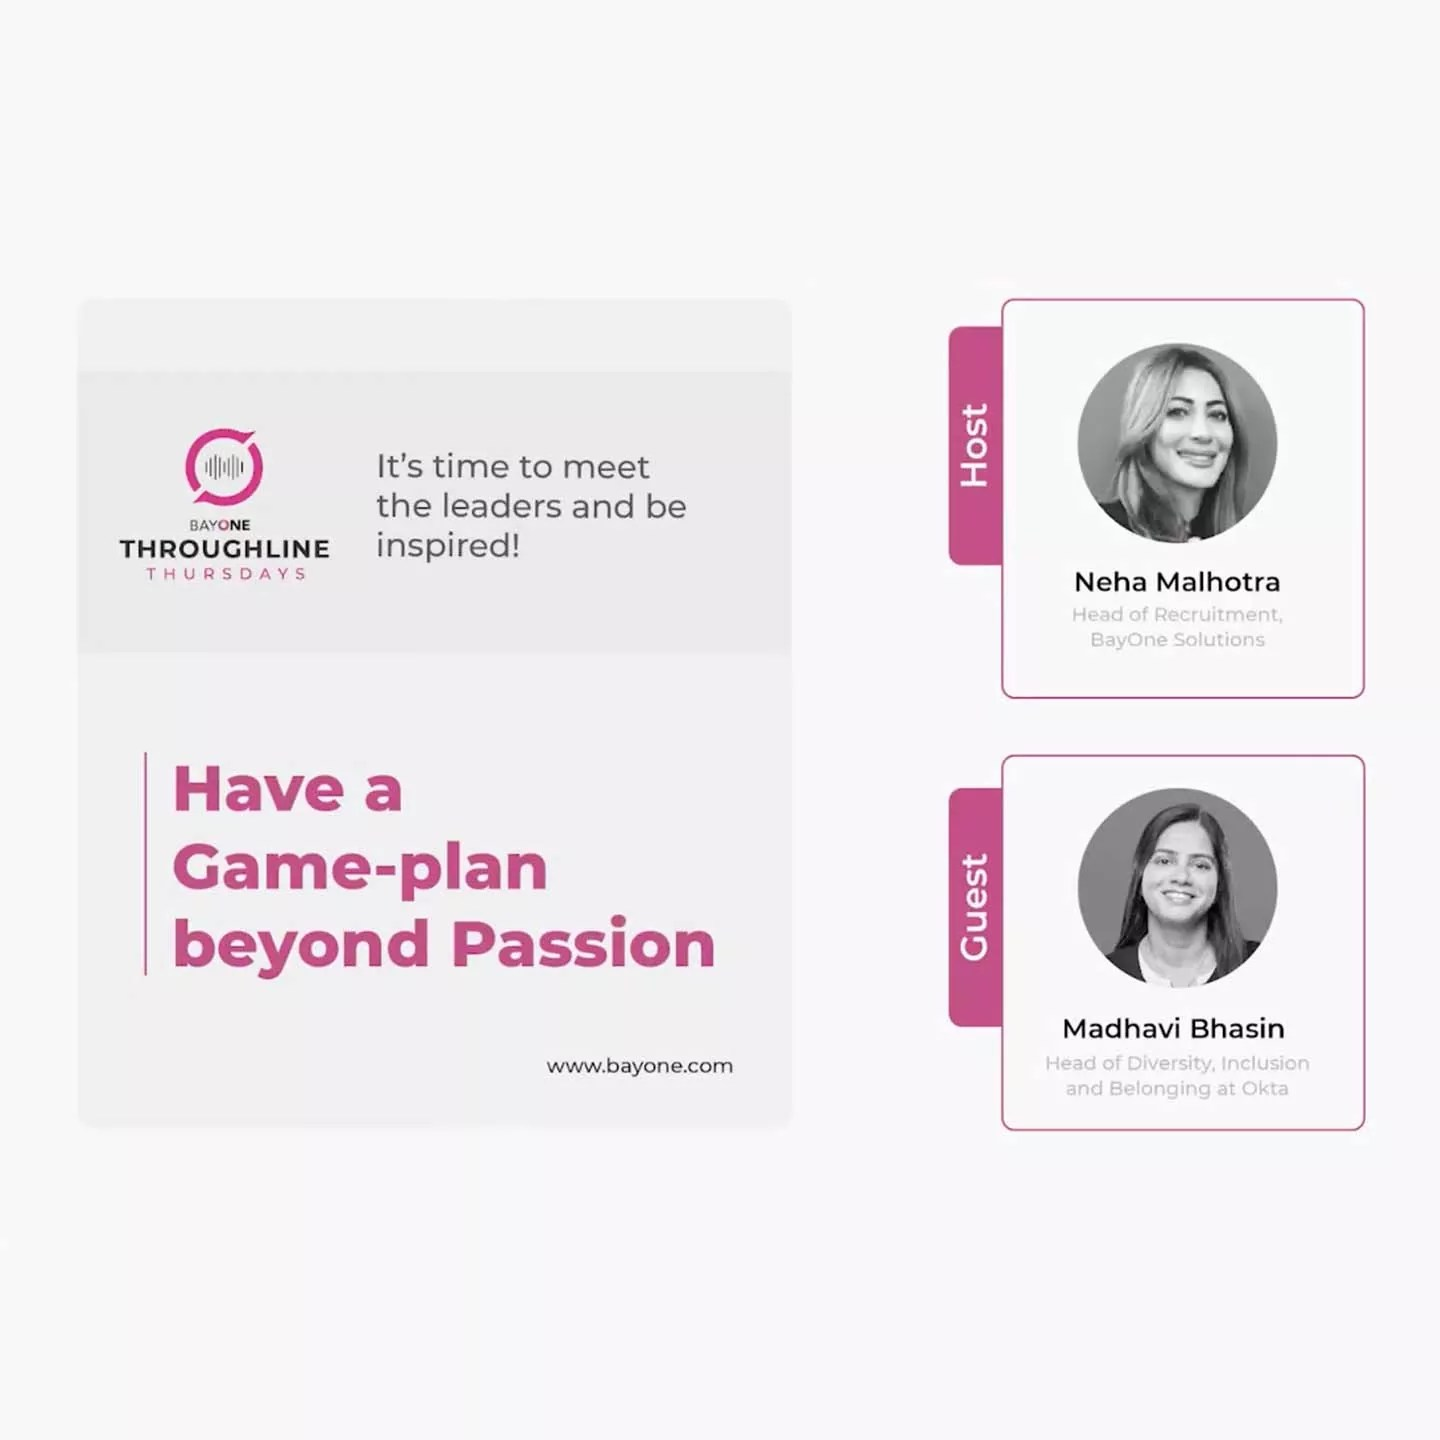 Have a Game-plan Beyond Passion